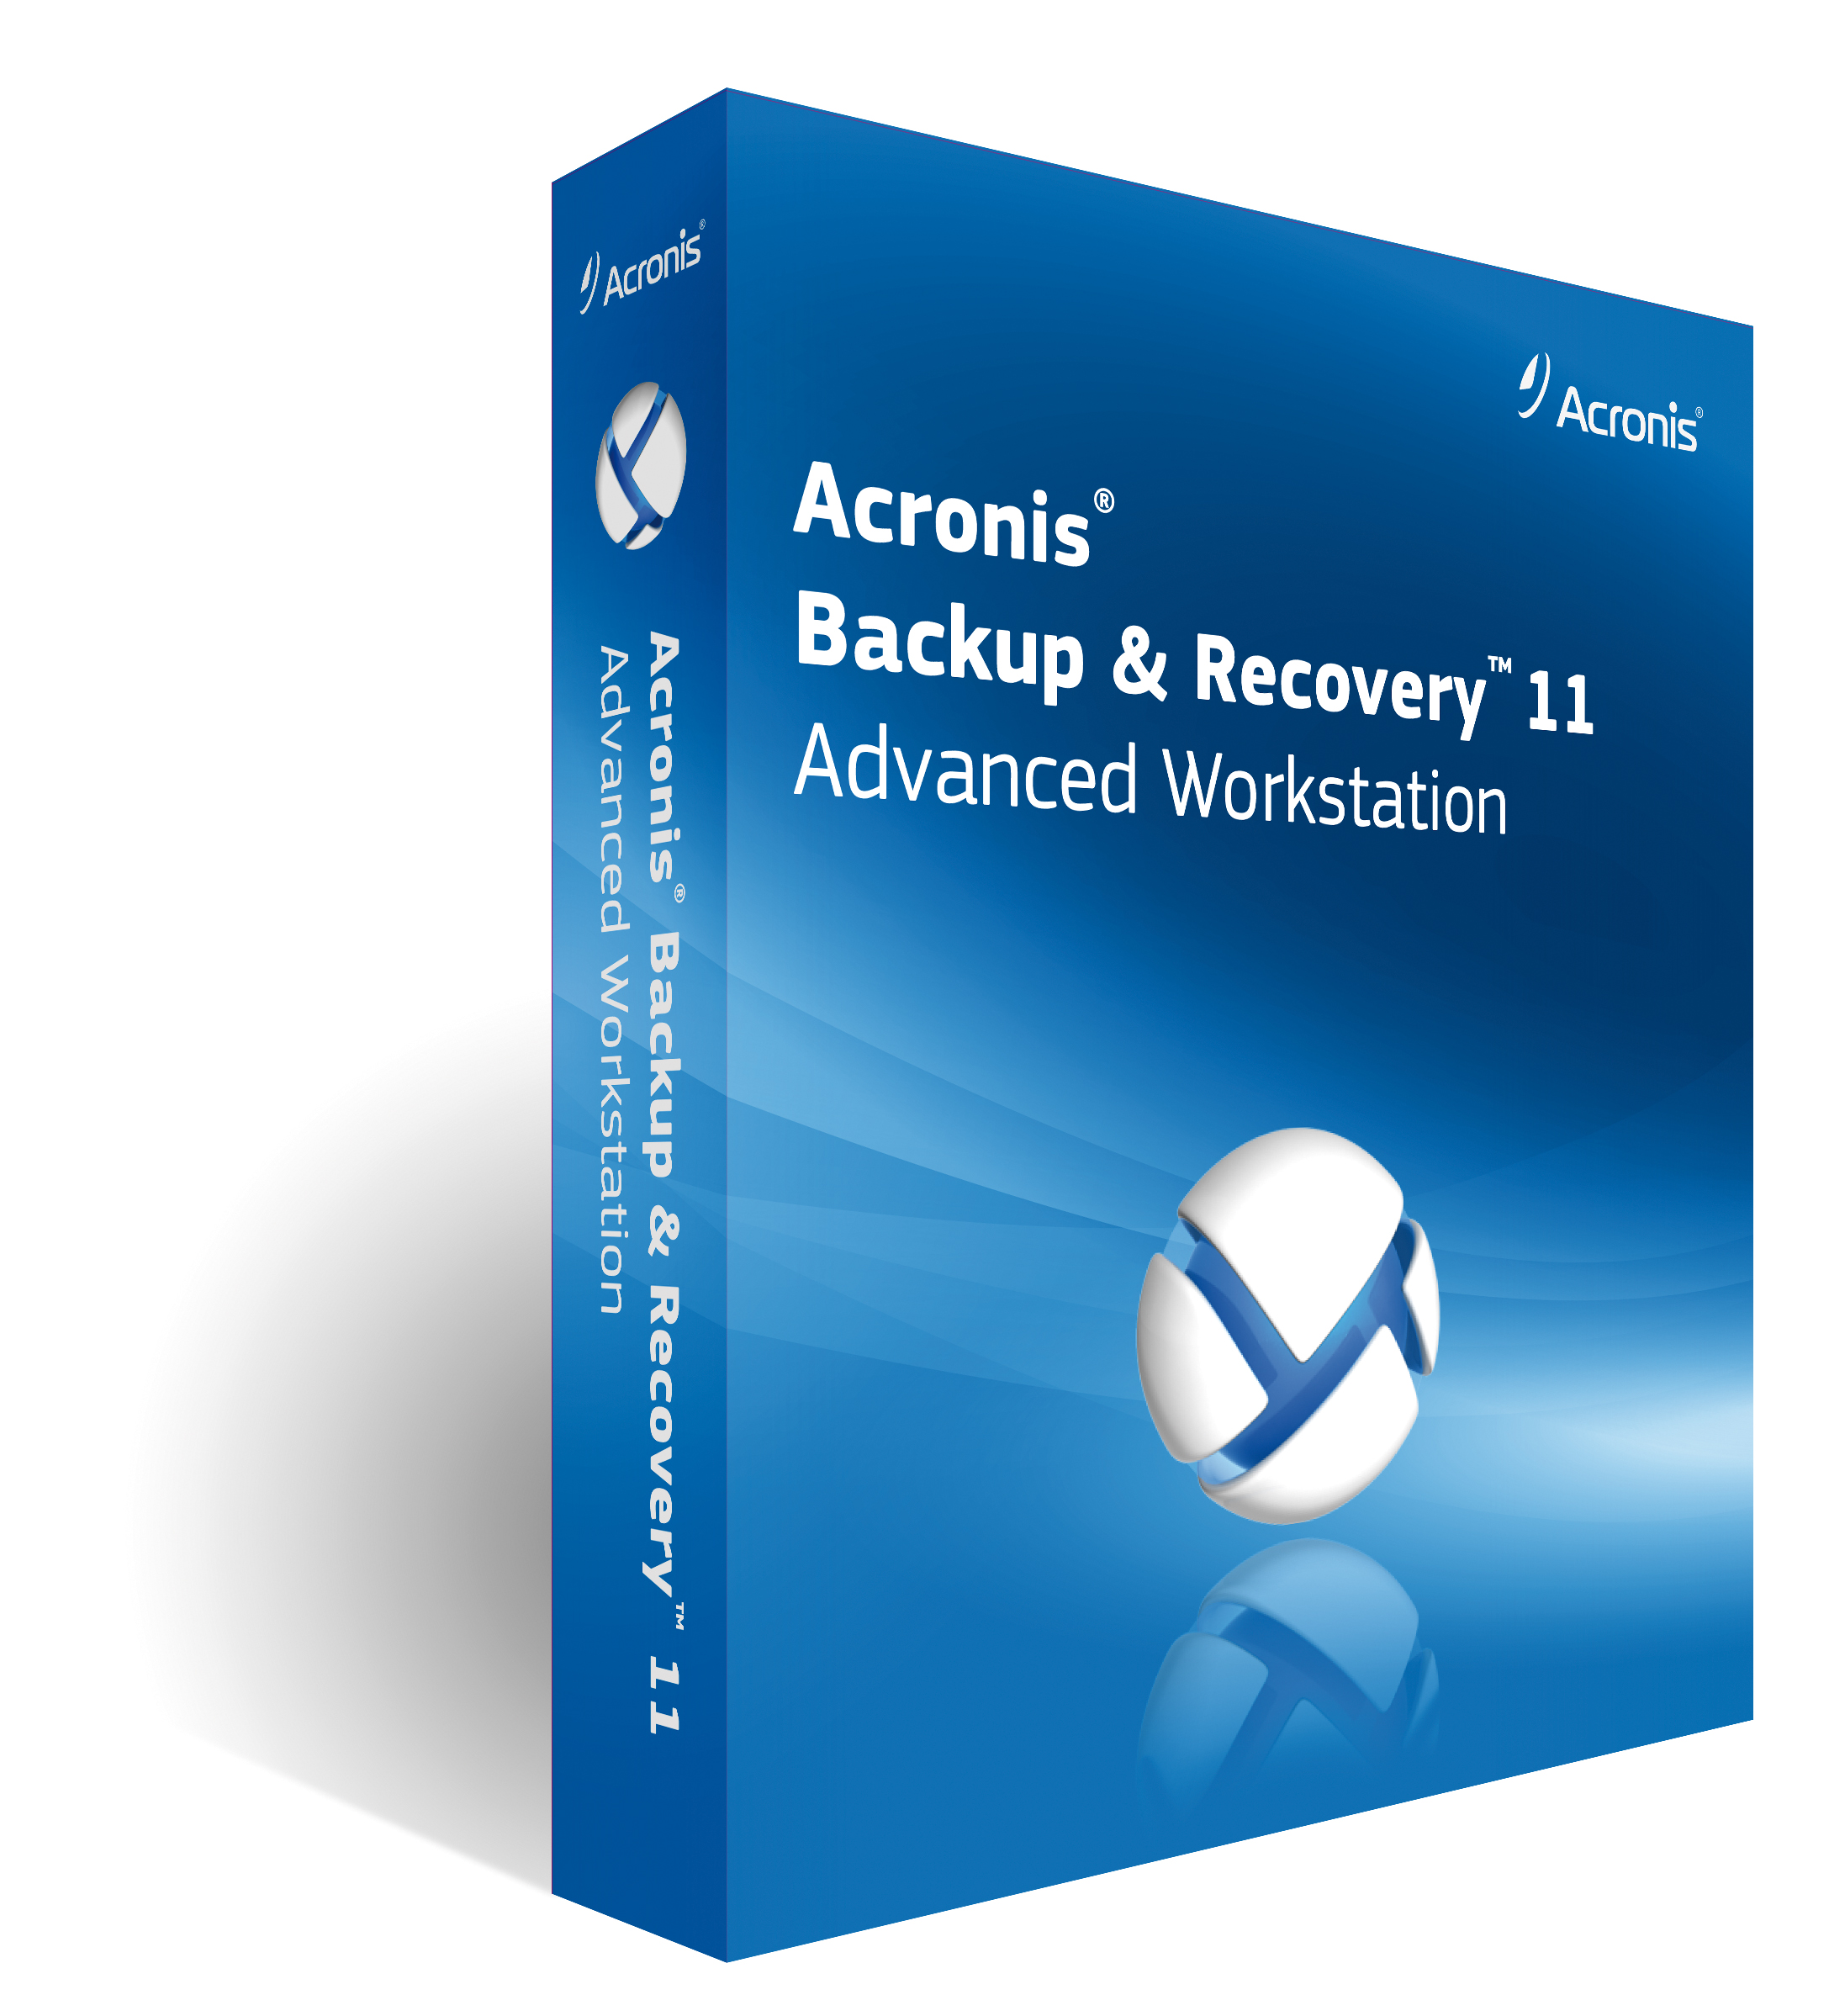 Acronis Backup & Recovery 11.5 Advanced Workstation